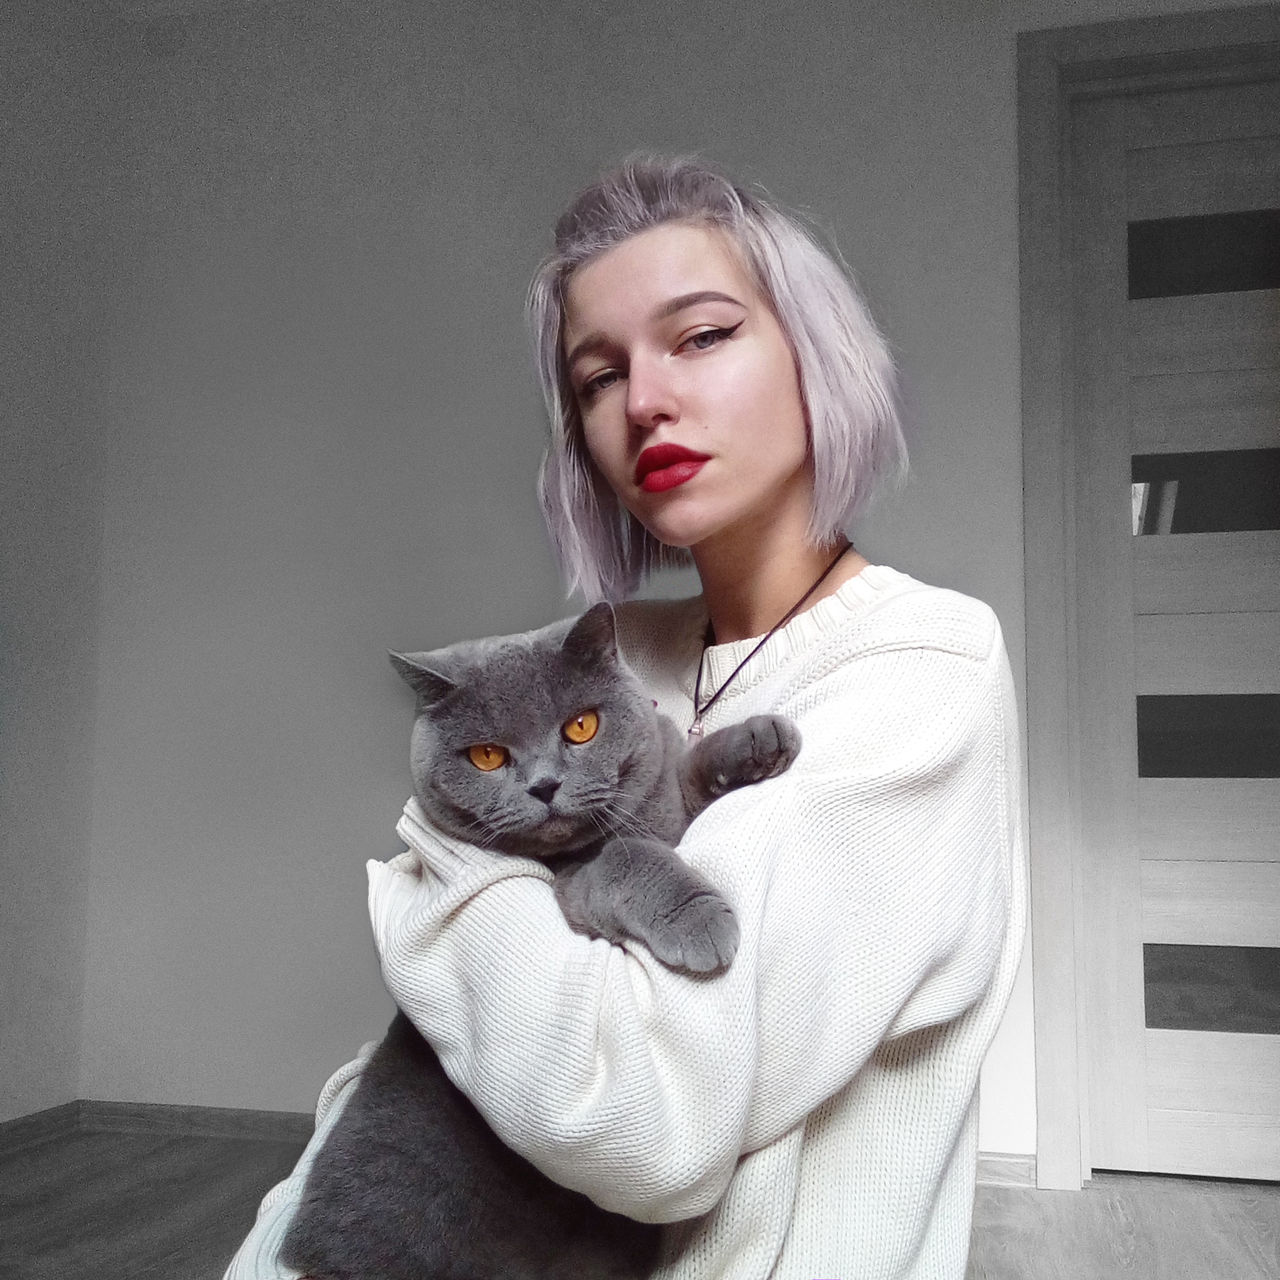 Portrait of young woman holding cat while sitting against wall